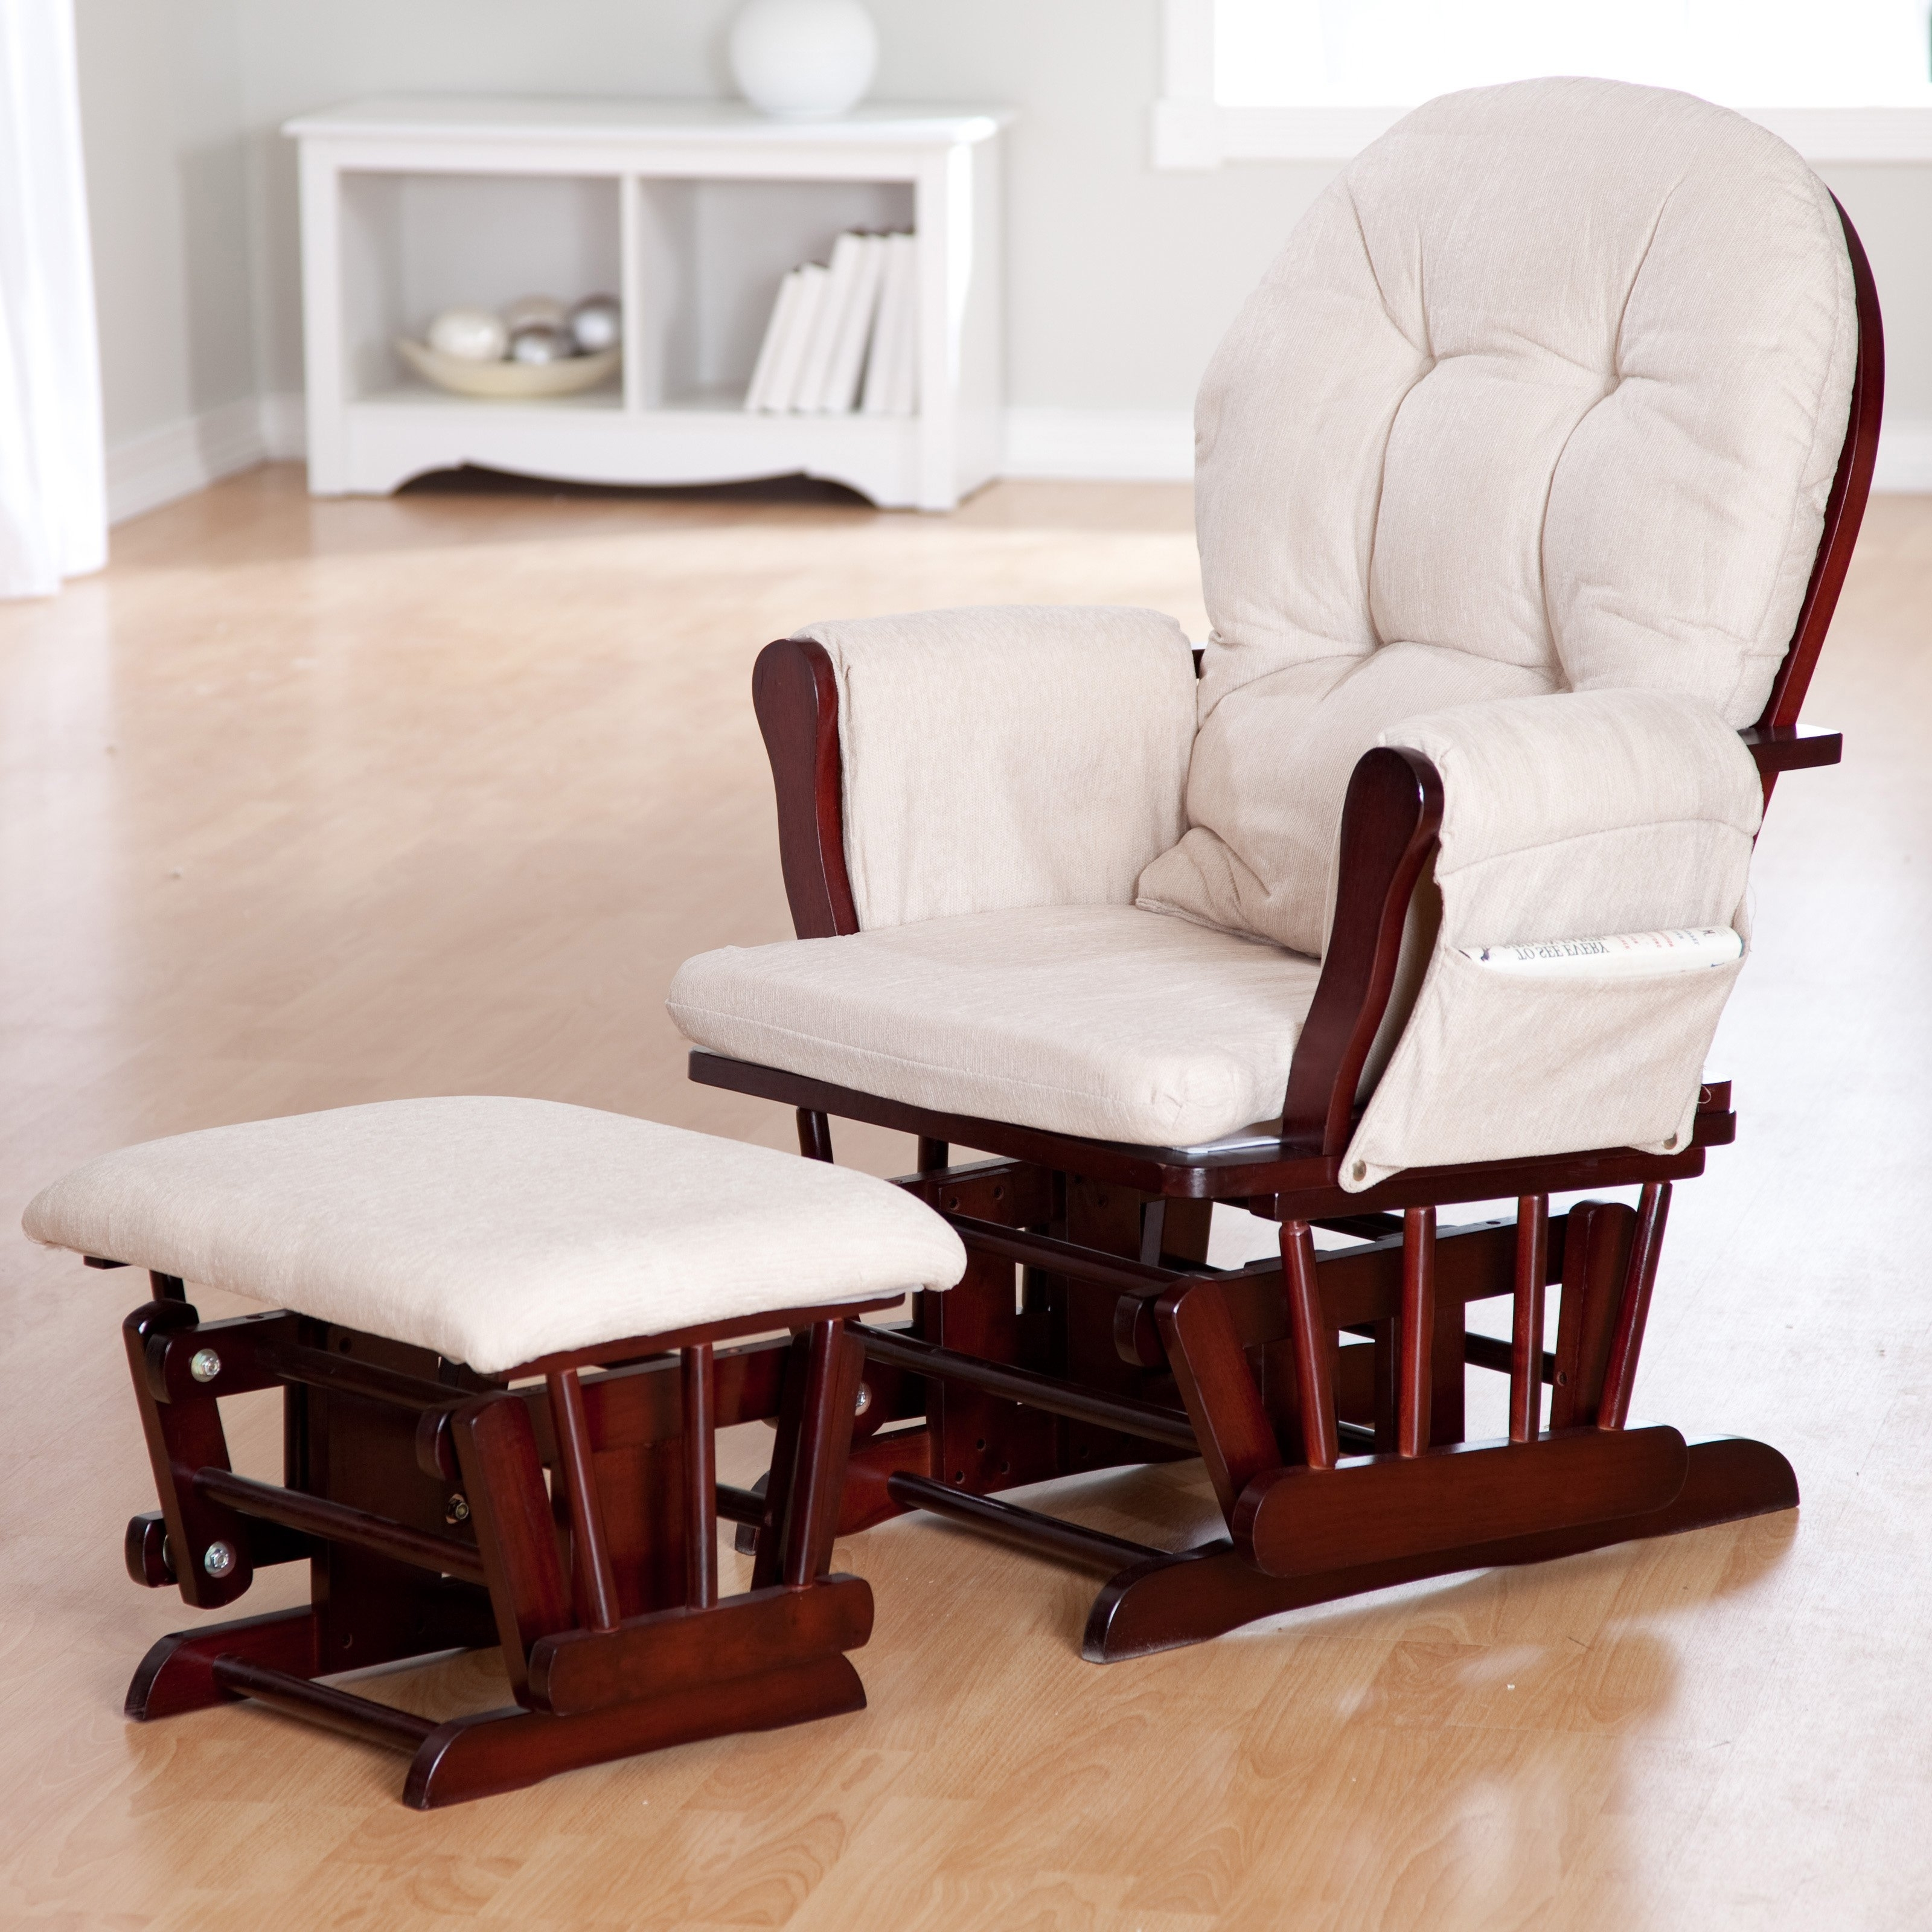 Unthinkable Nursery Rocking Chair With Ottoman Set Baby Furniture Within Most Current Ireland Rocking Chairs (View 12 of 15)